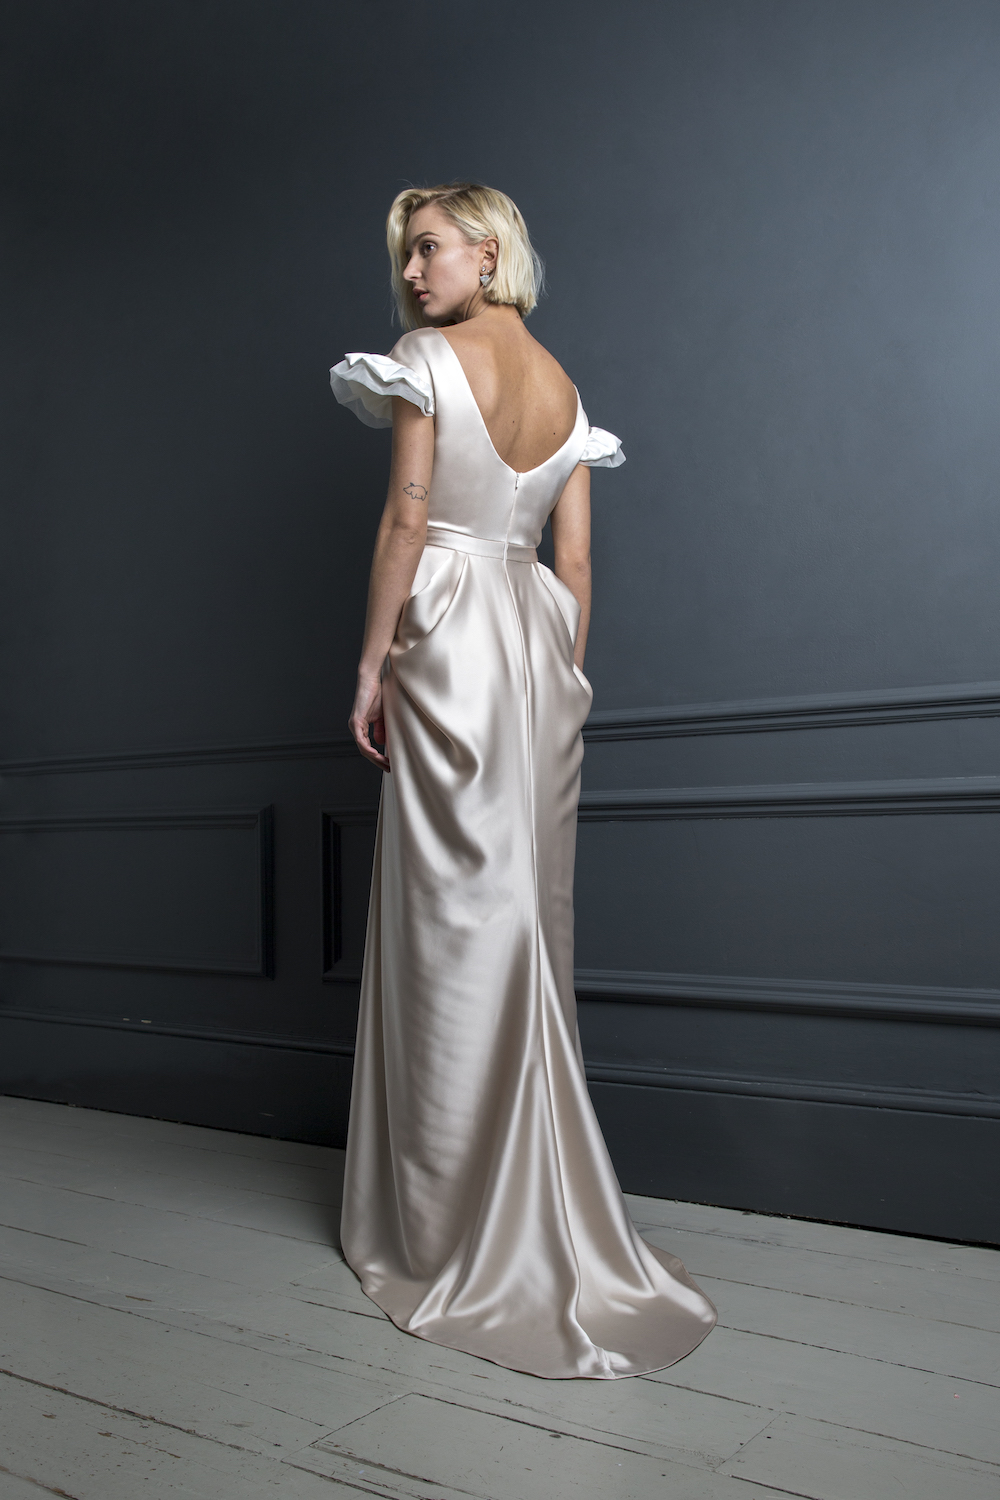 JAMES - LEE DRESS | WEDDING DRESS BY HALFPENNY LONDON